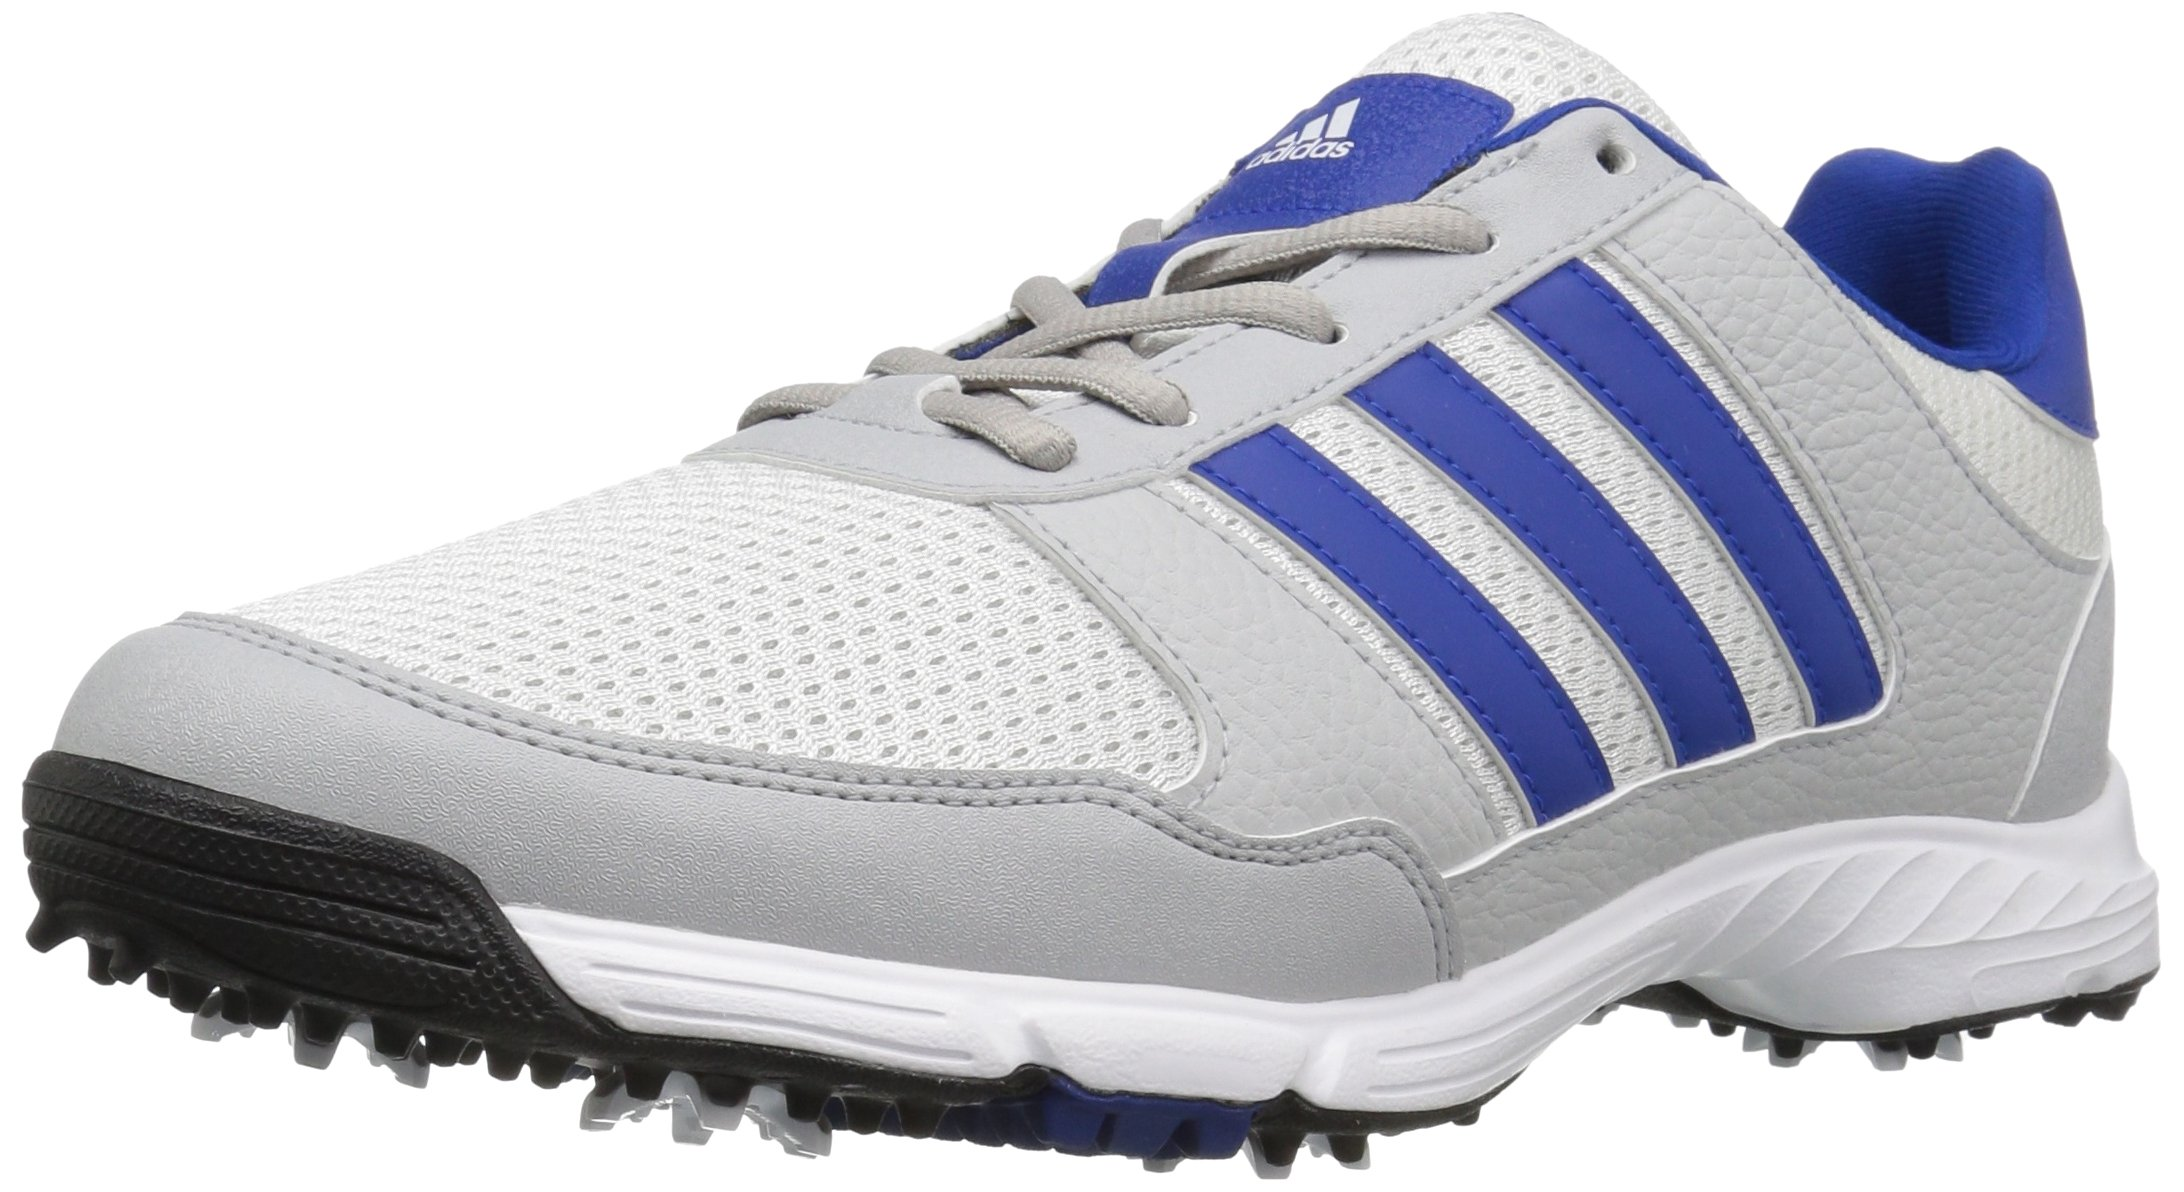 adidas Men's Tech Response Golf Shoe, White/Royal, 10.5 W US by adidas